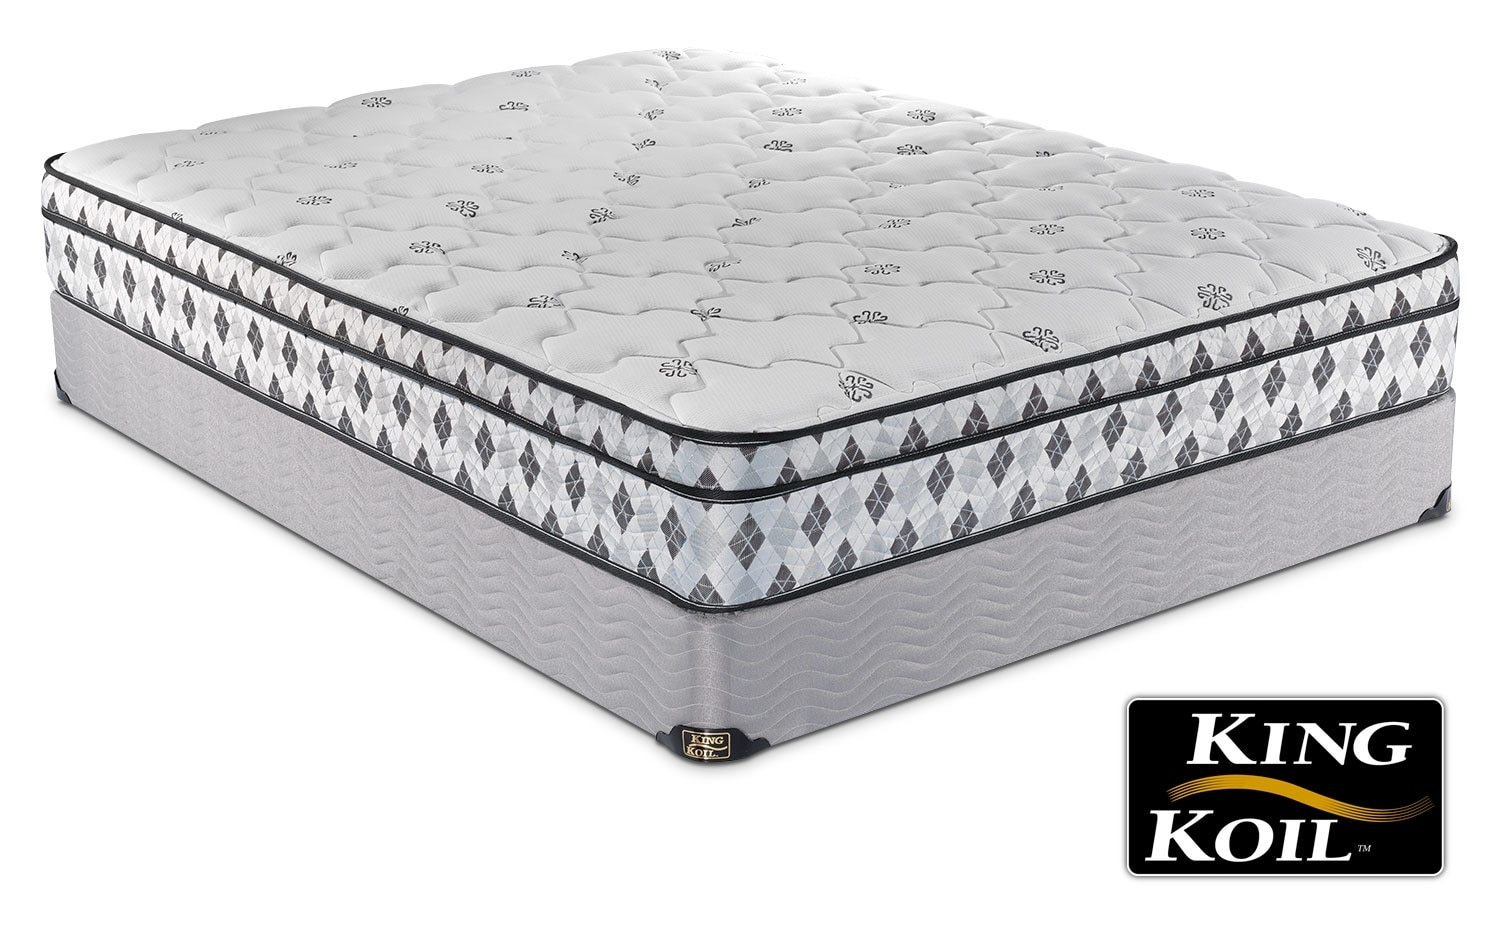 Mattresses and Bedding - King Koil Silent Night Queen Mattress/Boxspring Set